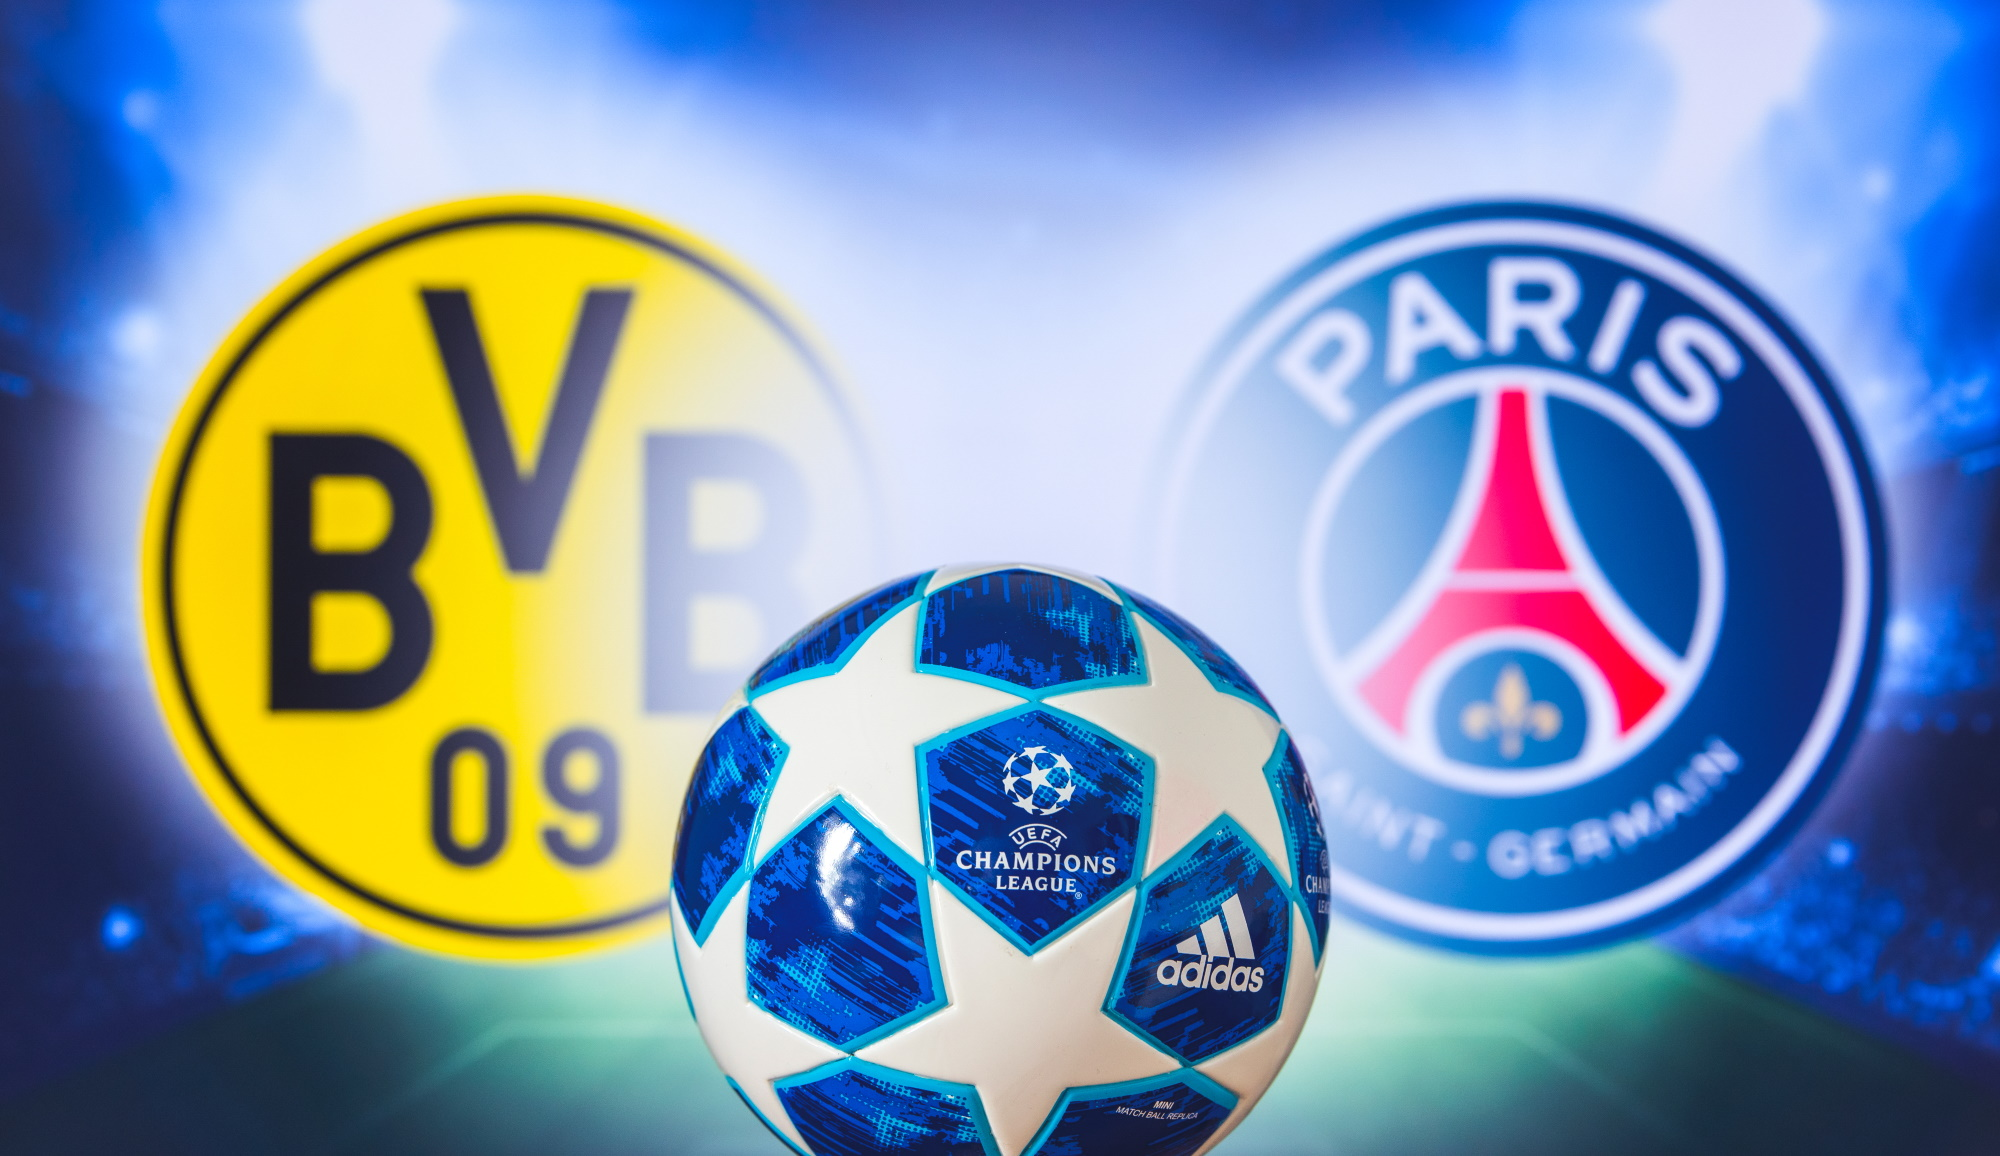 PSG vs Borussia Dortmund live stream: how to watch Champions League 2020 football from anywhere